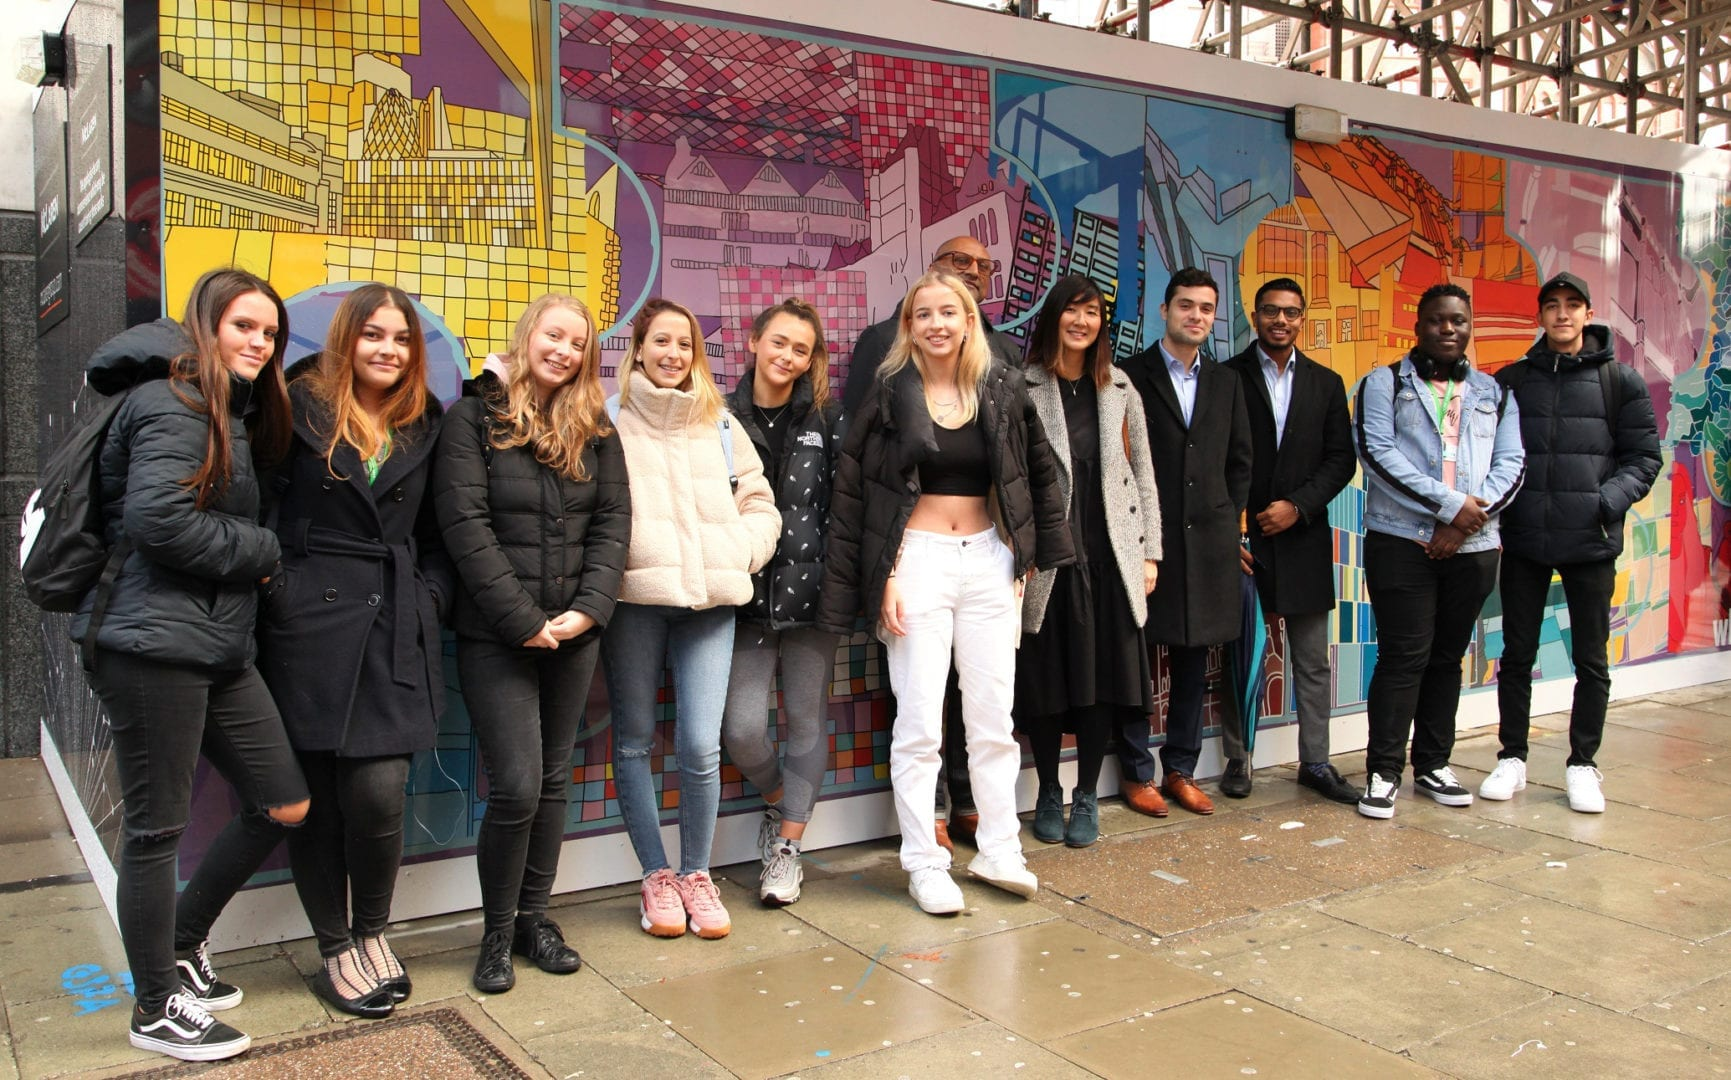 A picture of staff and students from Westminster Kingsway college and dar Group staff at 150 Holborn